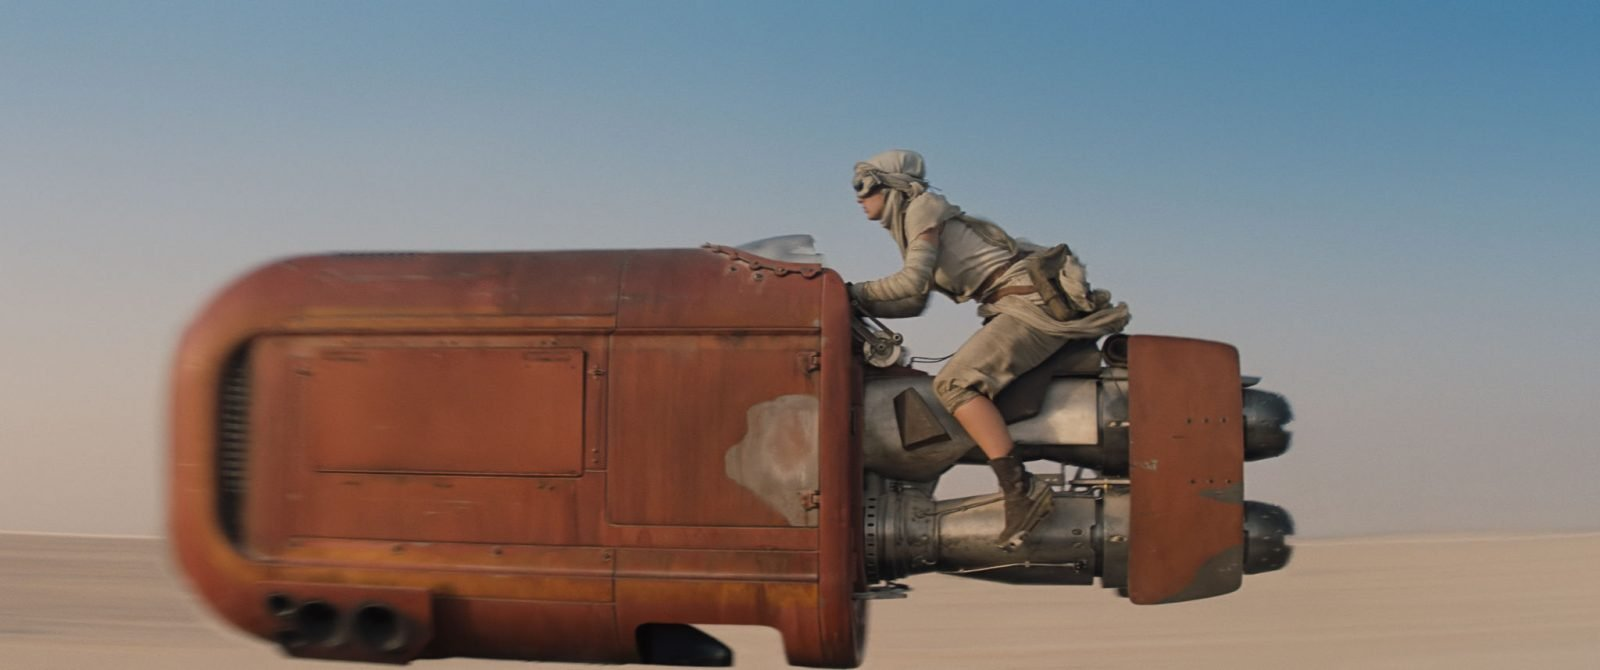 Star Wars VII The Force Awakens 40 - Rey on her speeder